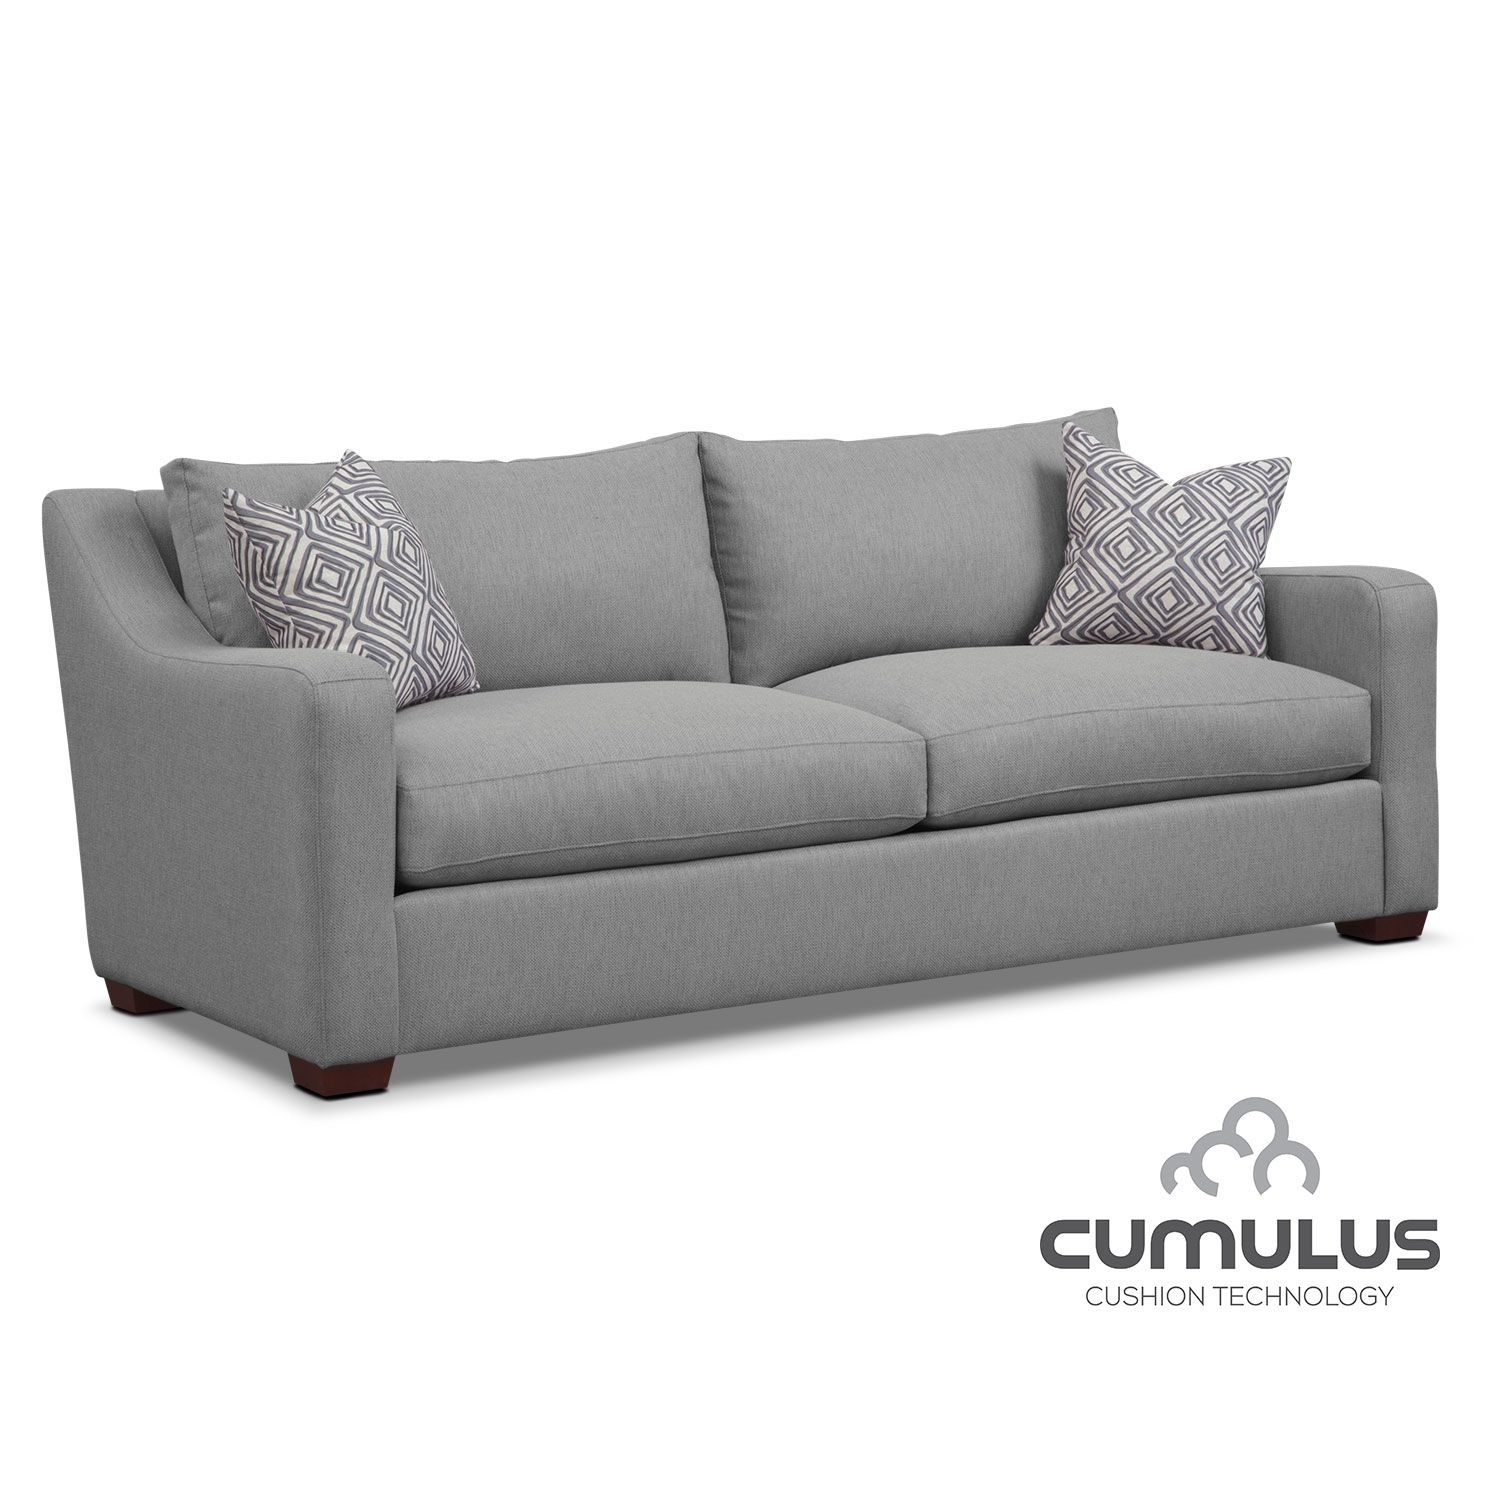 Living Room Furniture Jules Cumulus Sofa